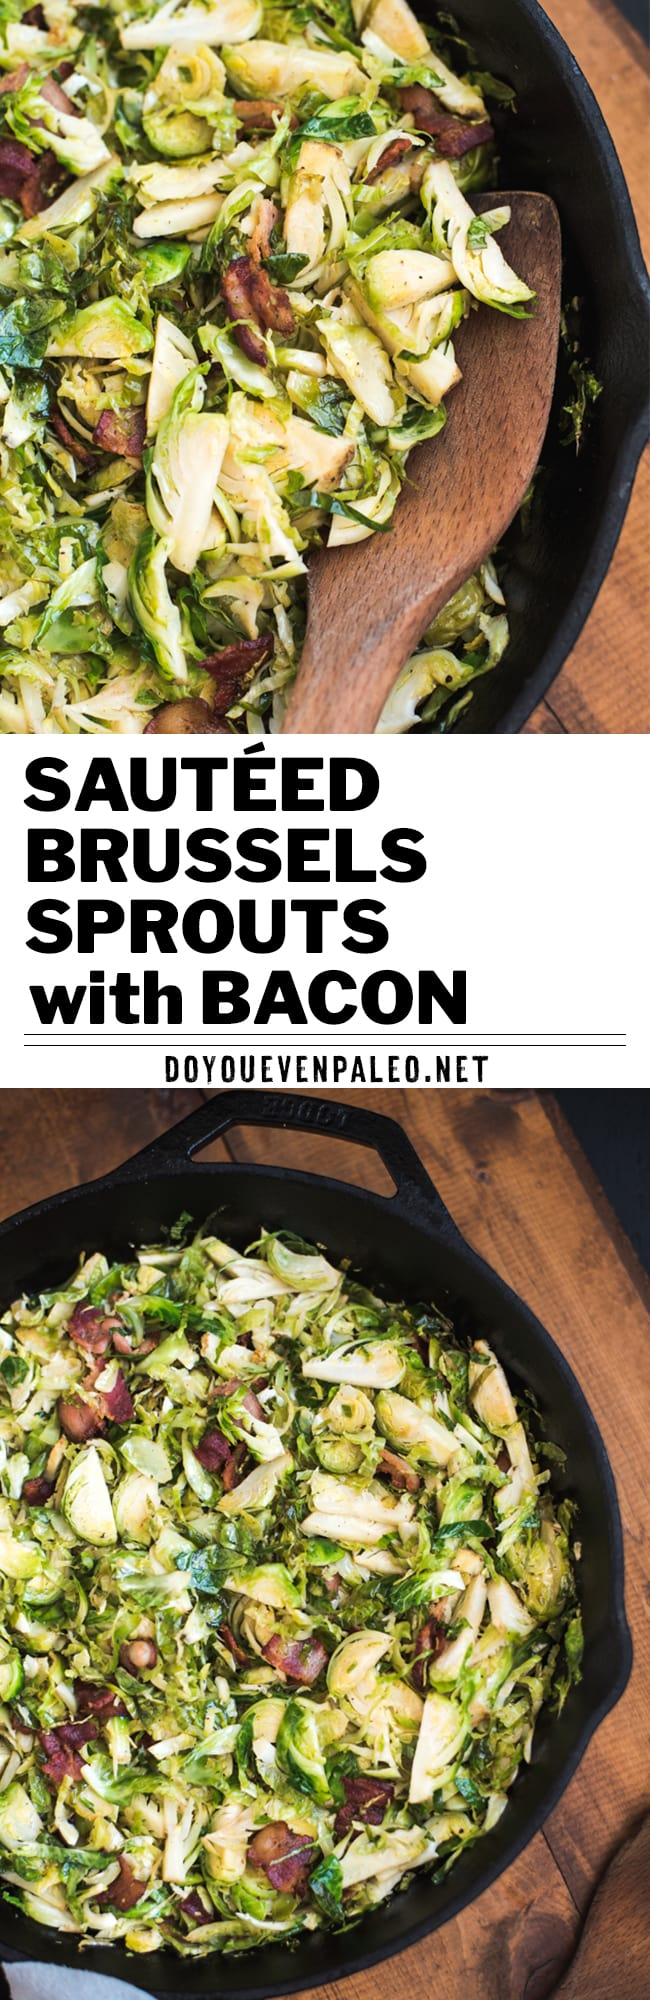 Paleo Sautéed Brussels Sprouts with Bacon - an easy Whole30 recipe with only 4 ingredients! Cook up this healthy recipe in only 15 minutes. Bacon and brussels sprouts are the perfect pair! Gluten free, clean eating, 5 ingredients or less, and full of veggies. | DoYouEvenPaleo.net #paleo #glutenfree #whole30